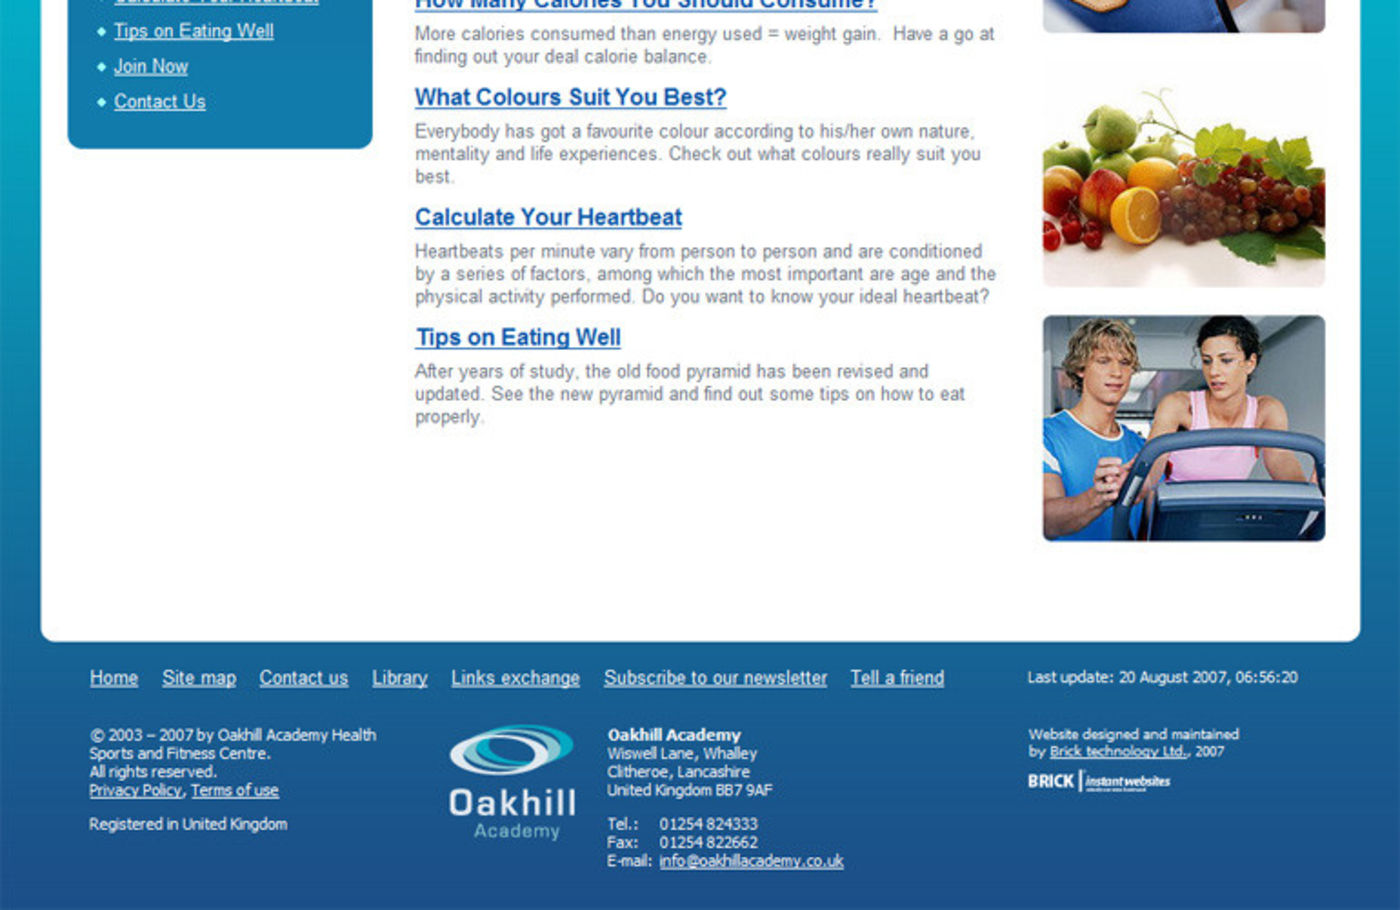 Oakhill Academy Page footer